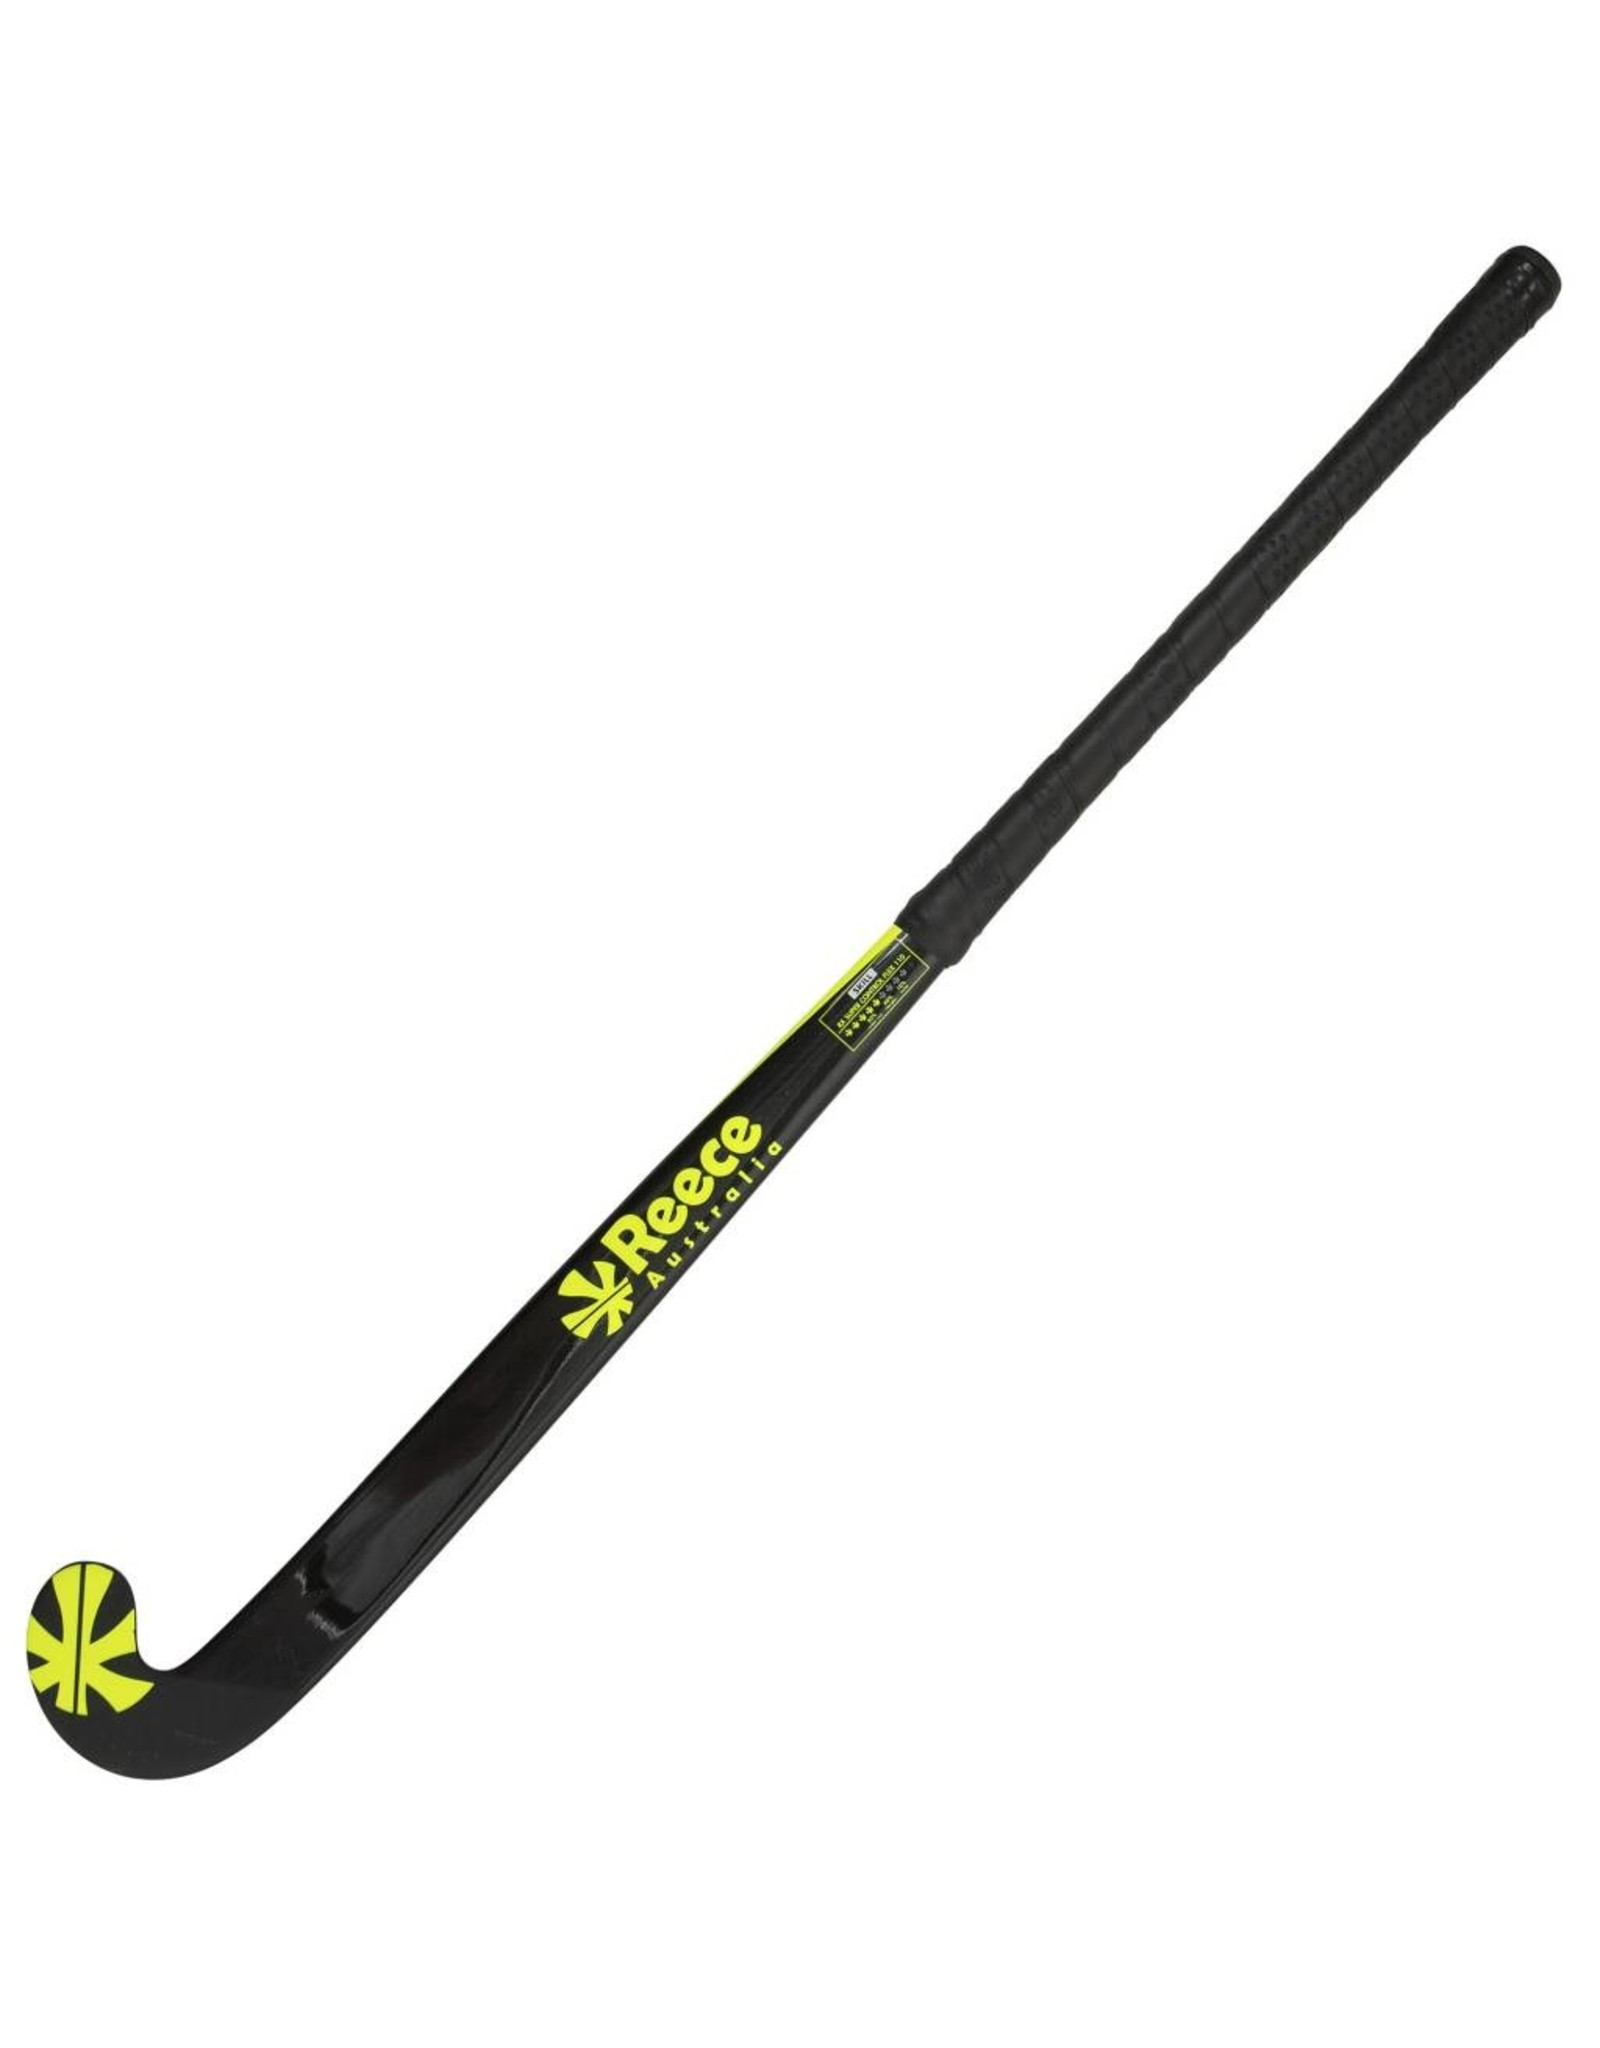 Reece RX 110 Hyper Carbon  Skill